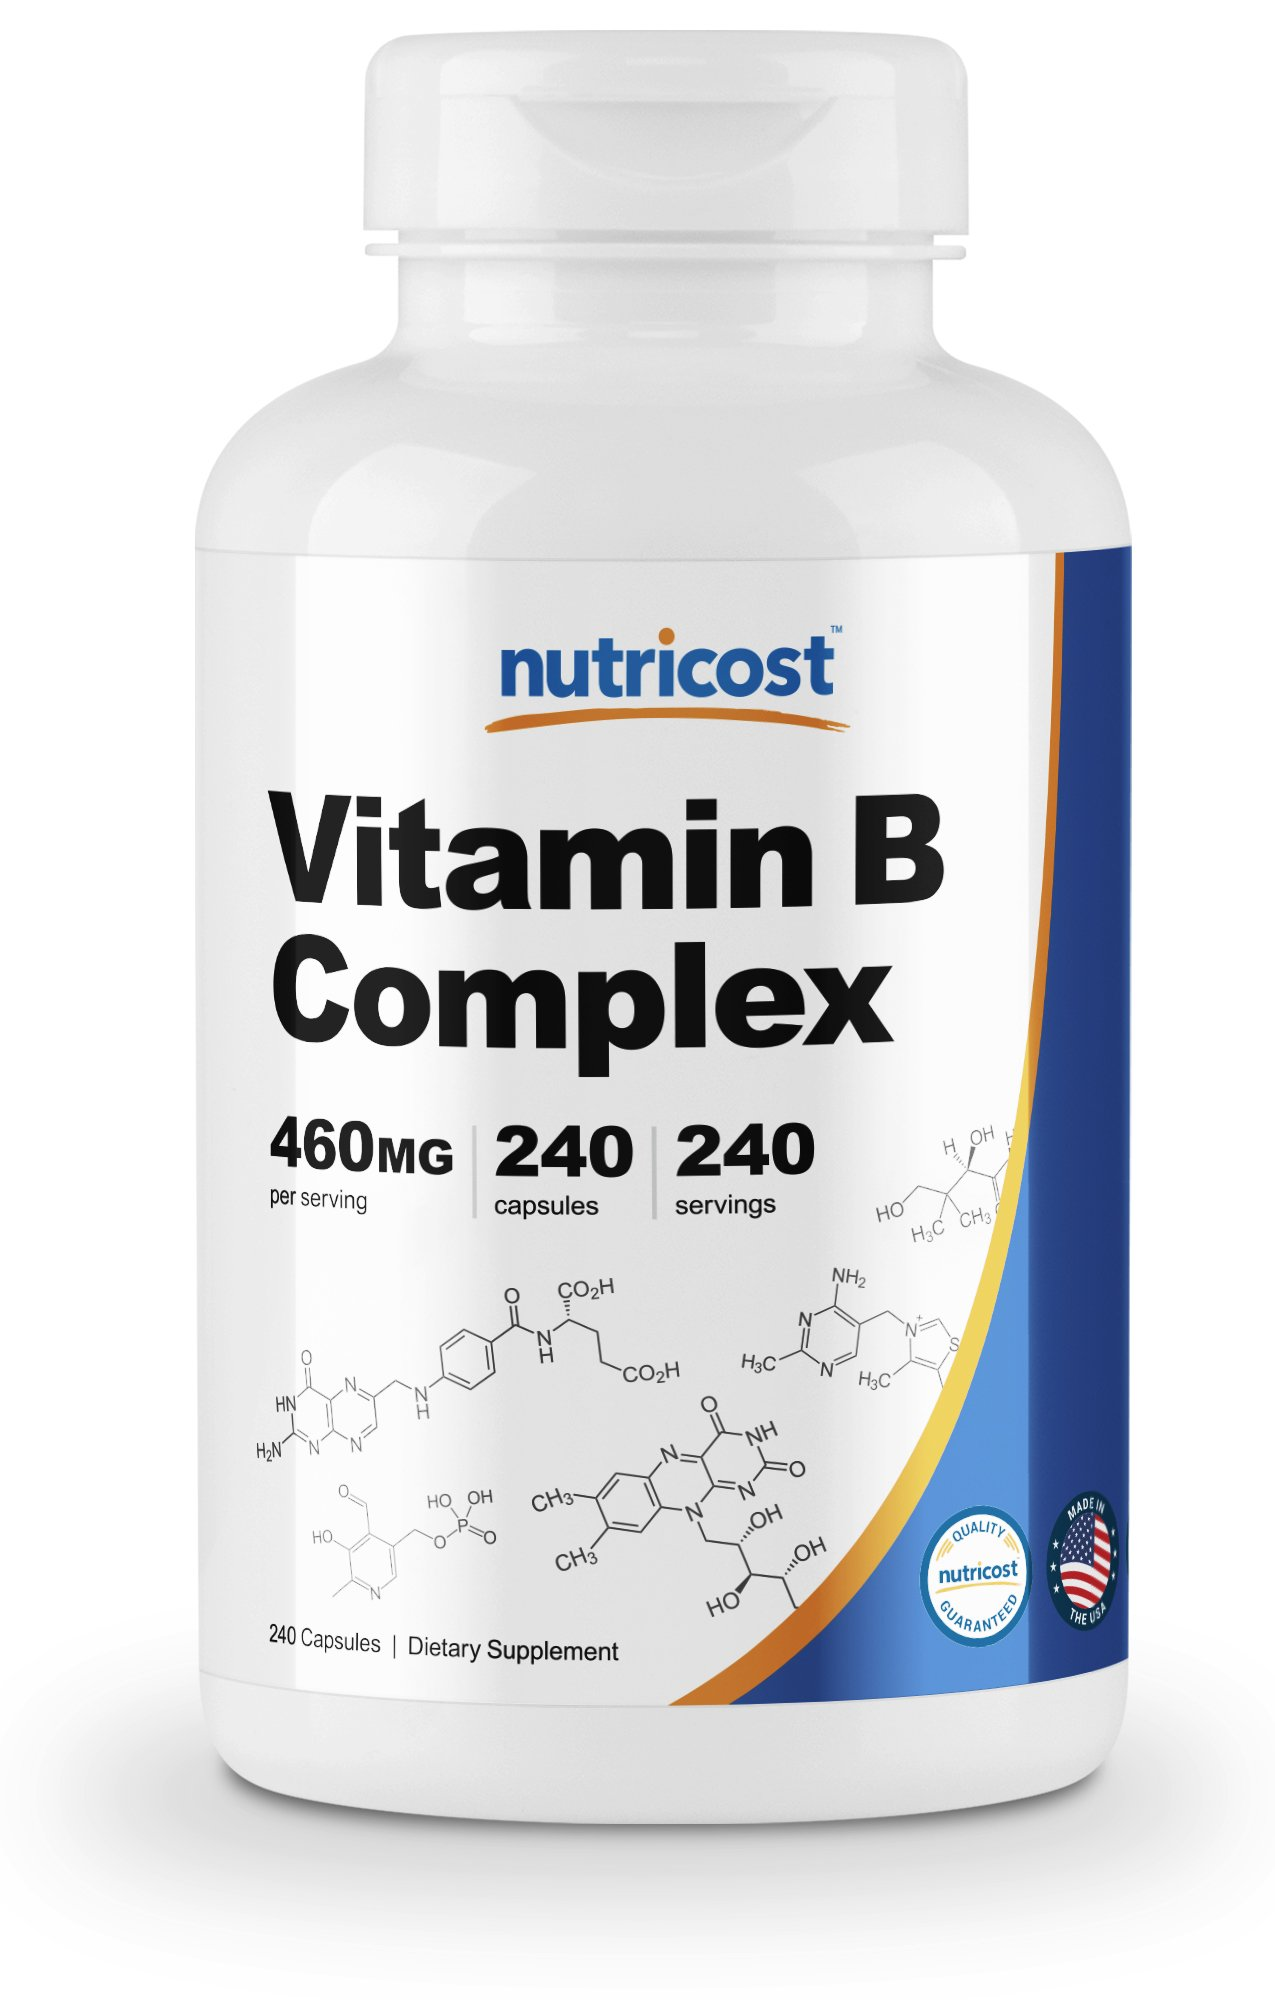 Nutricost High Potency Vitamin B Complex 460mg, 240 Capsules - With Vitamin C - Energy Complex